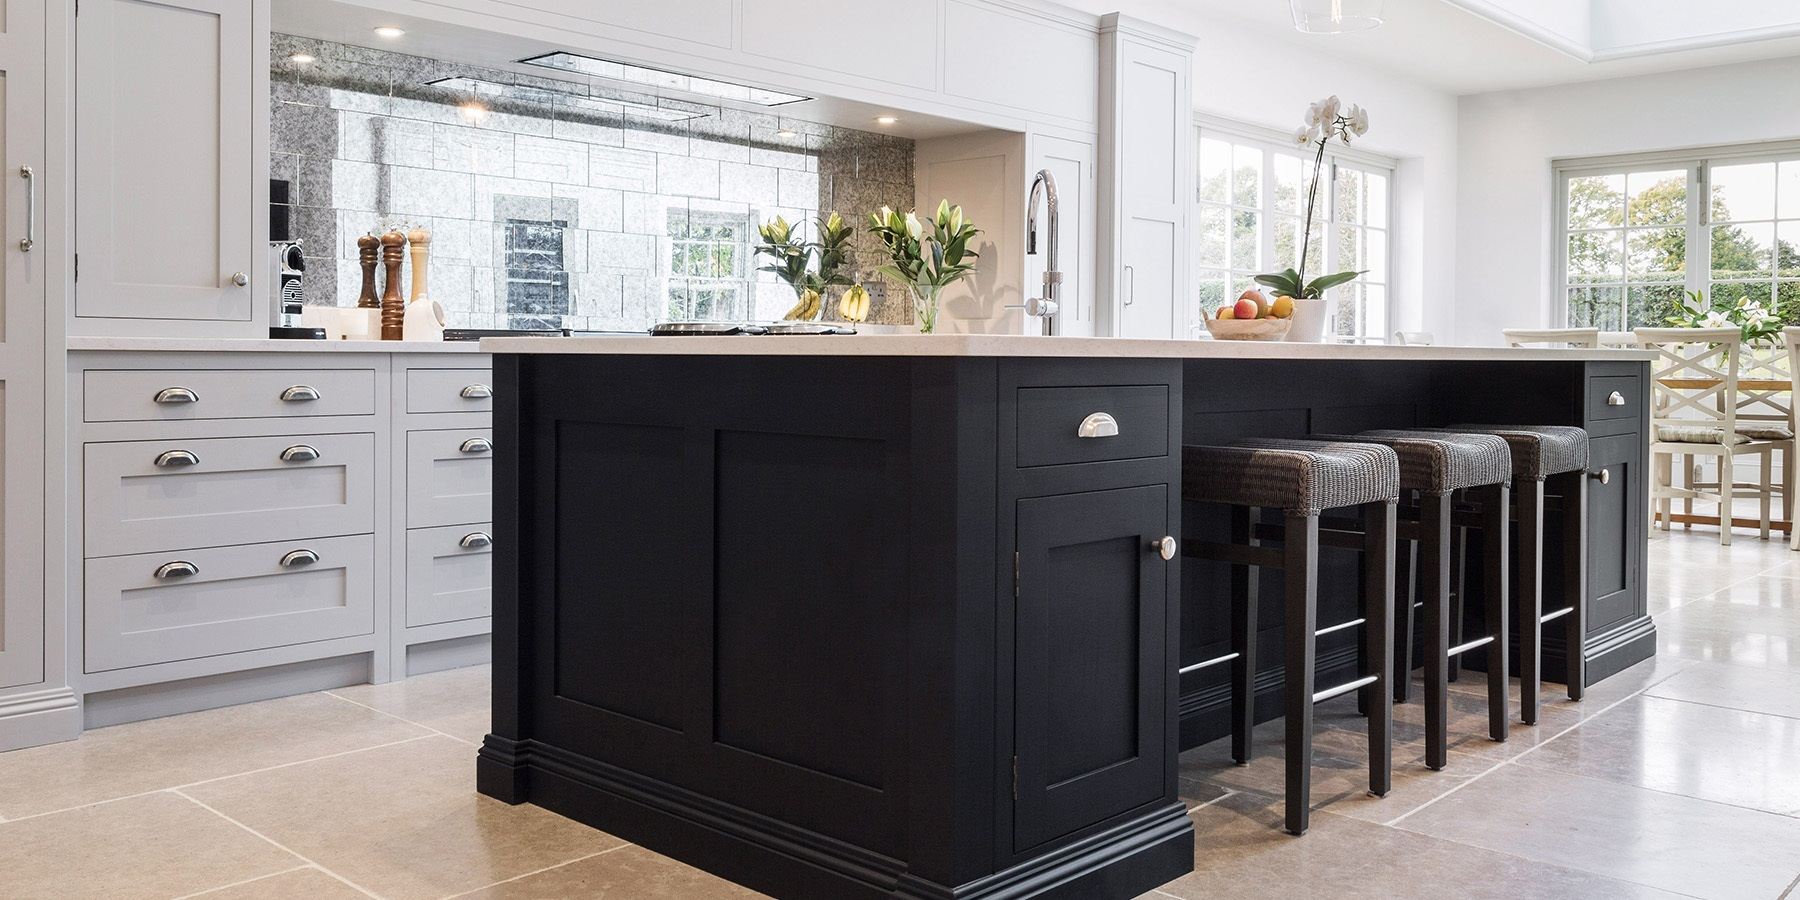 Luxury Open-plan Handmade Shaker Kitchen  - Burlanes beautiful handmade Hoyden kitchen, with central blue kitchen island and white worktops, mirrored splashback and Quooker boiling water tap.